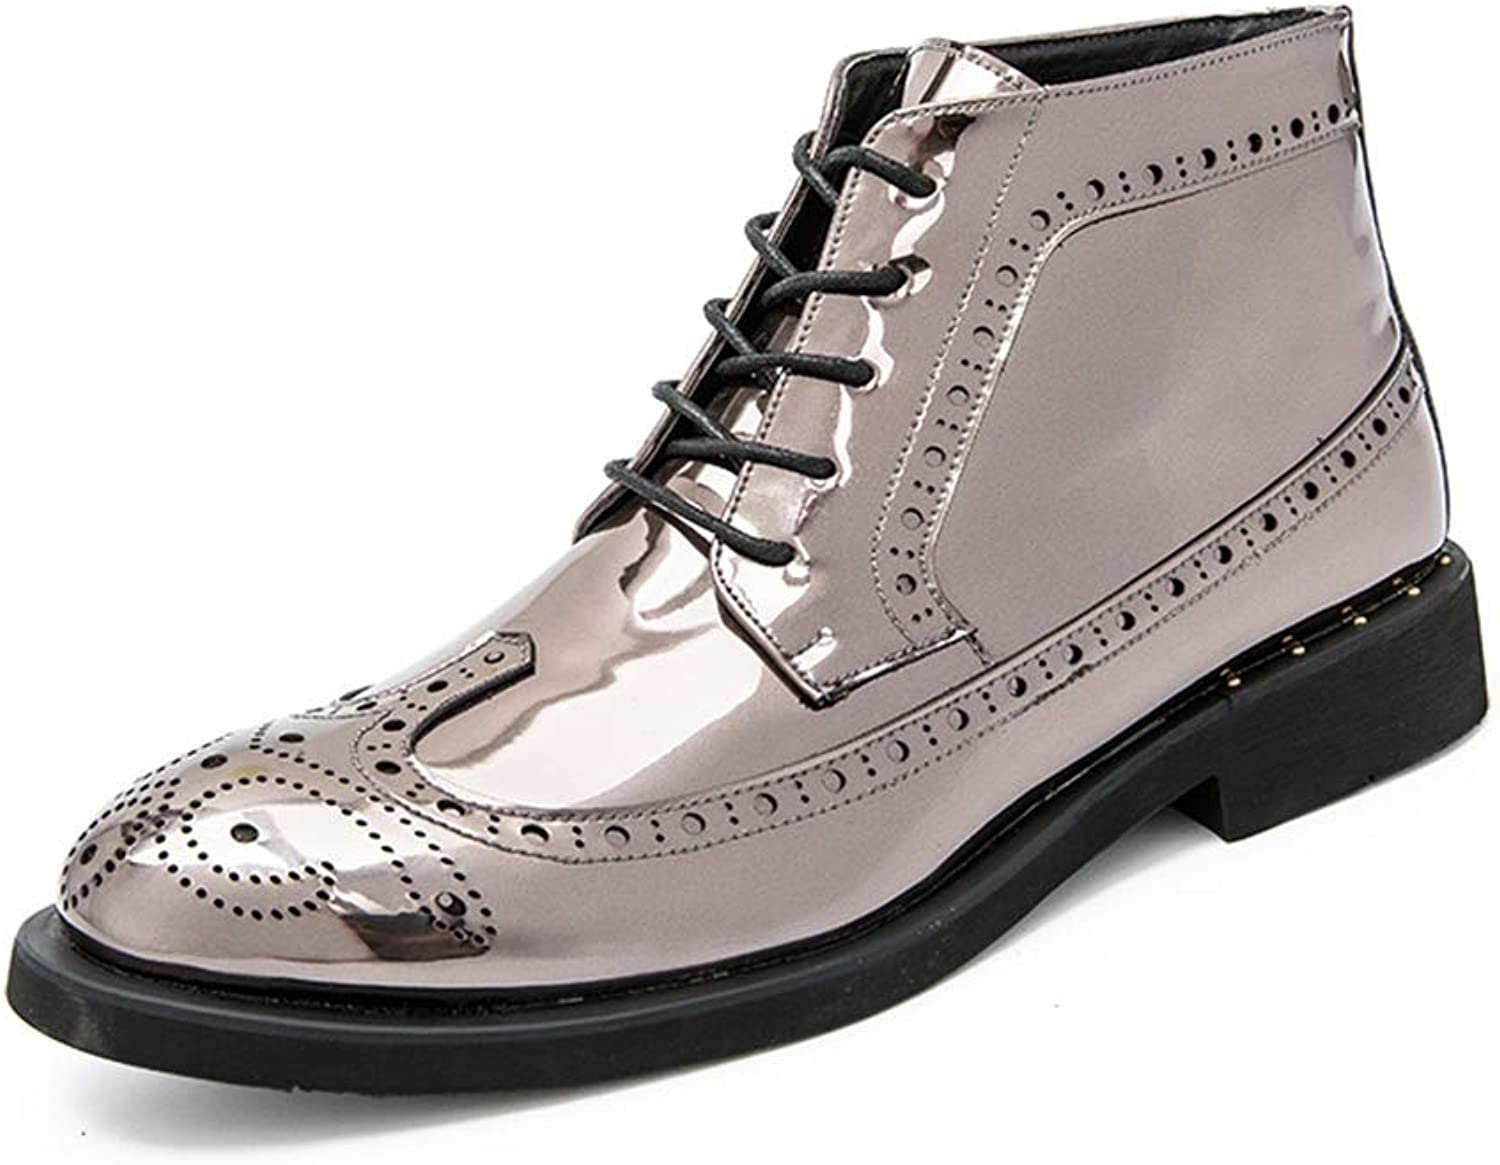 MXL Men's Fashion Ankle Work Boot Casual Autumn and Winter Classic Carved Patent Leather Brogue High Top Boot